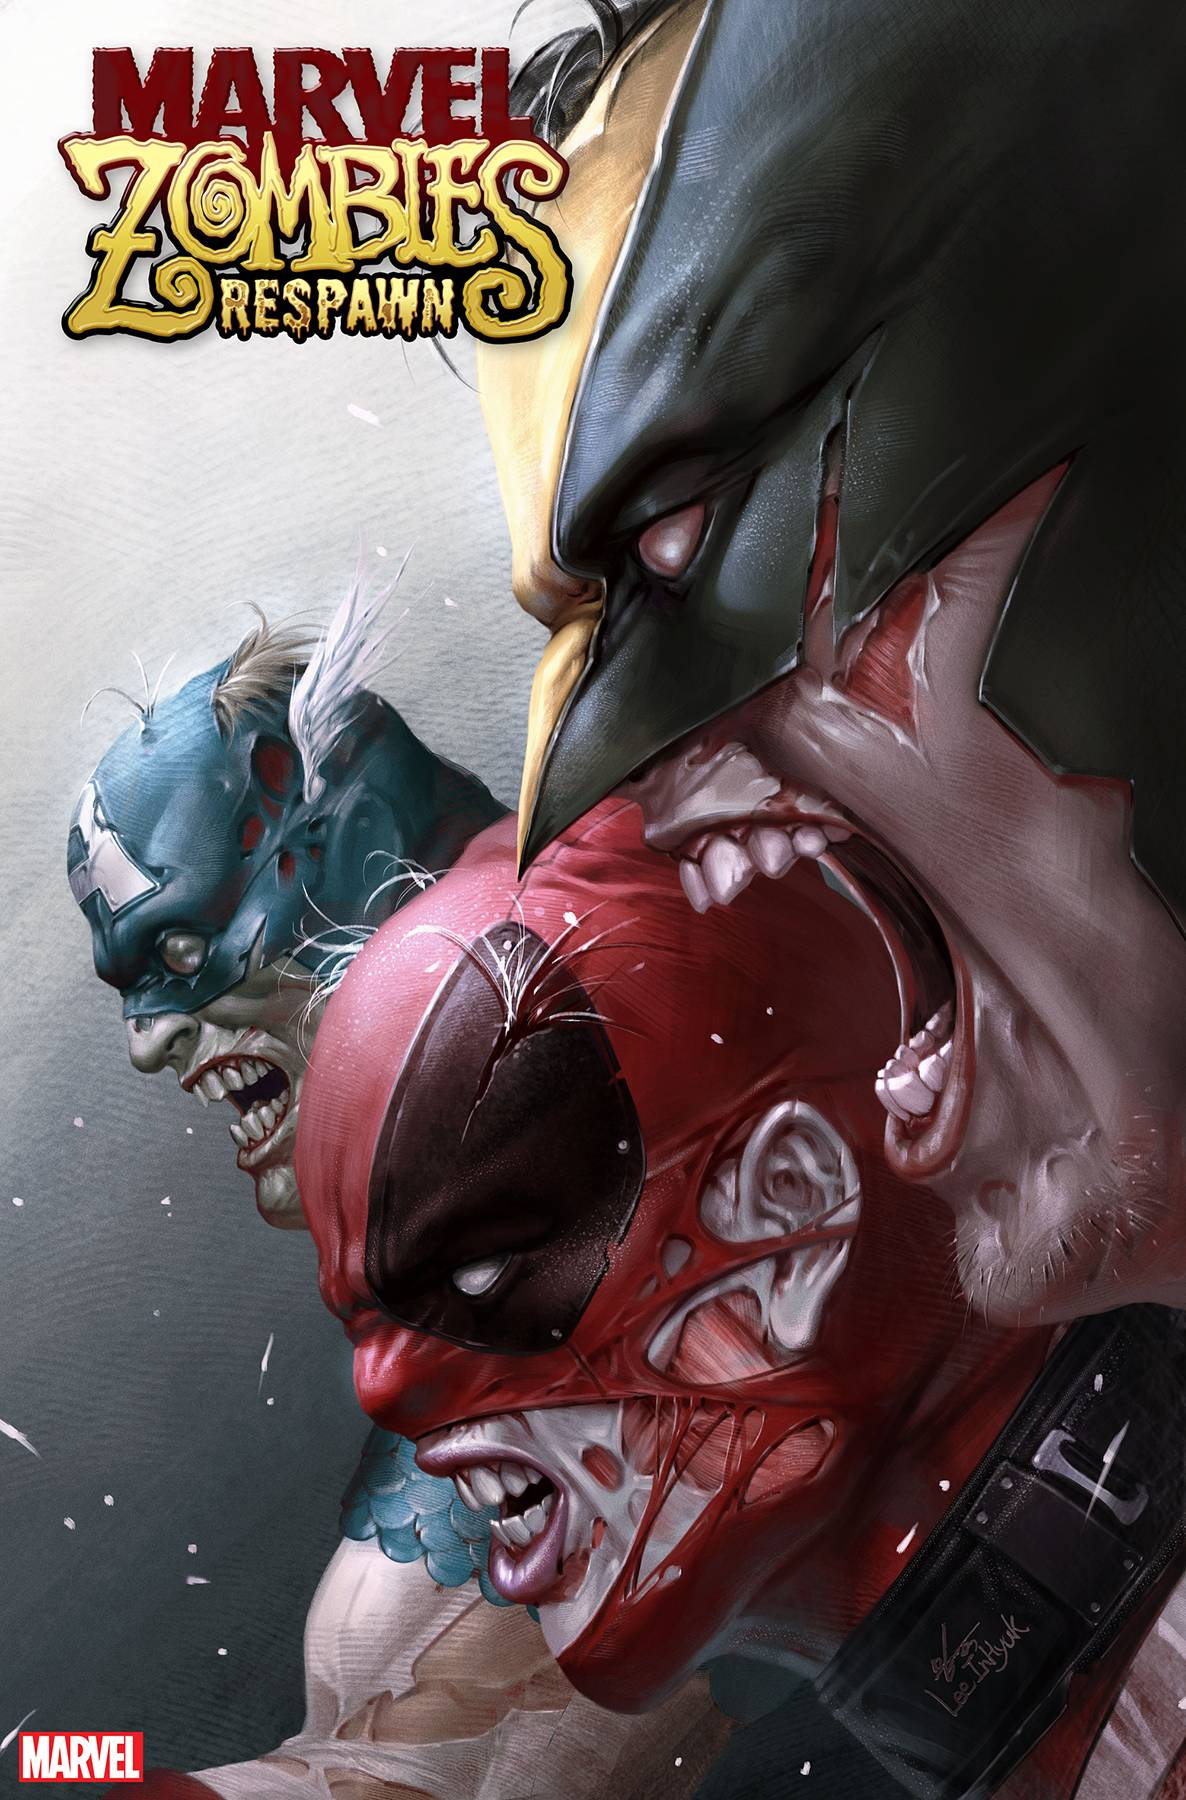 Marvel Zombies Ressurrection #1